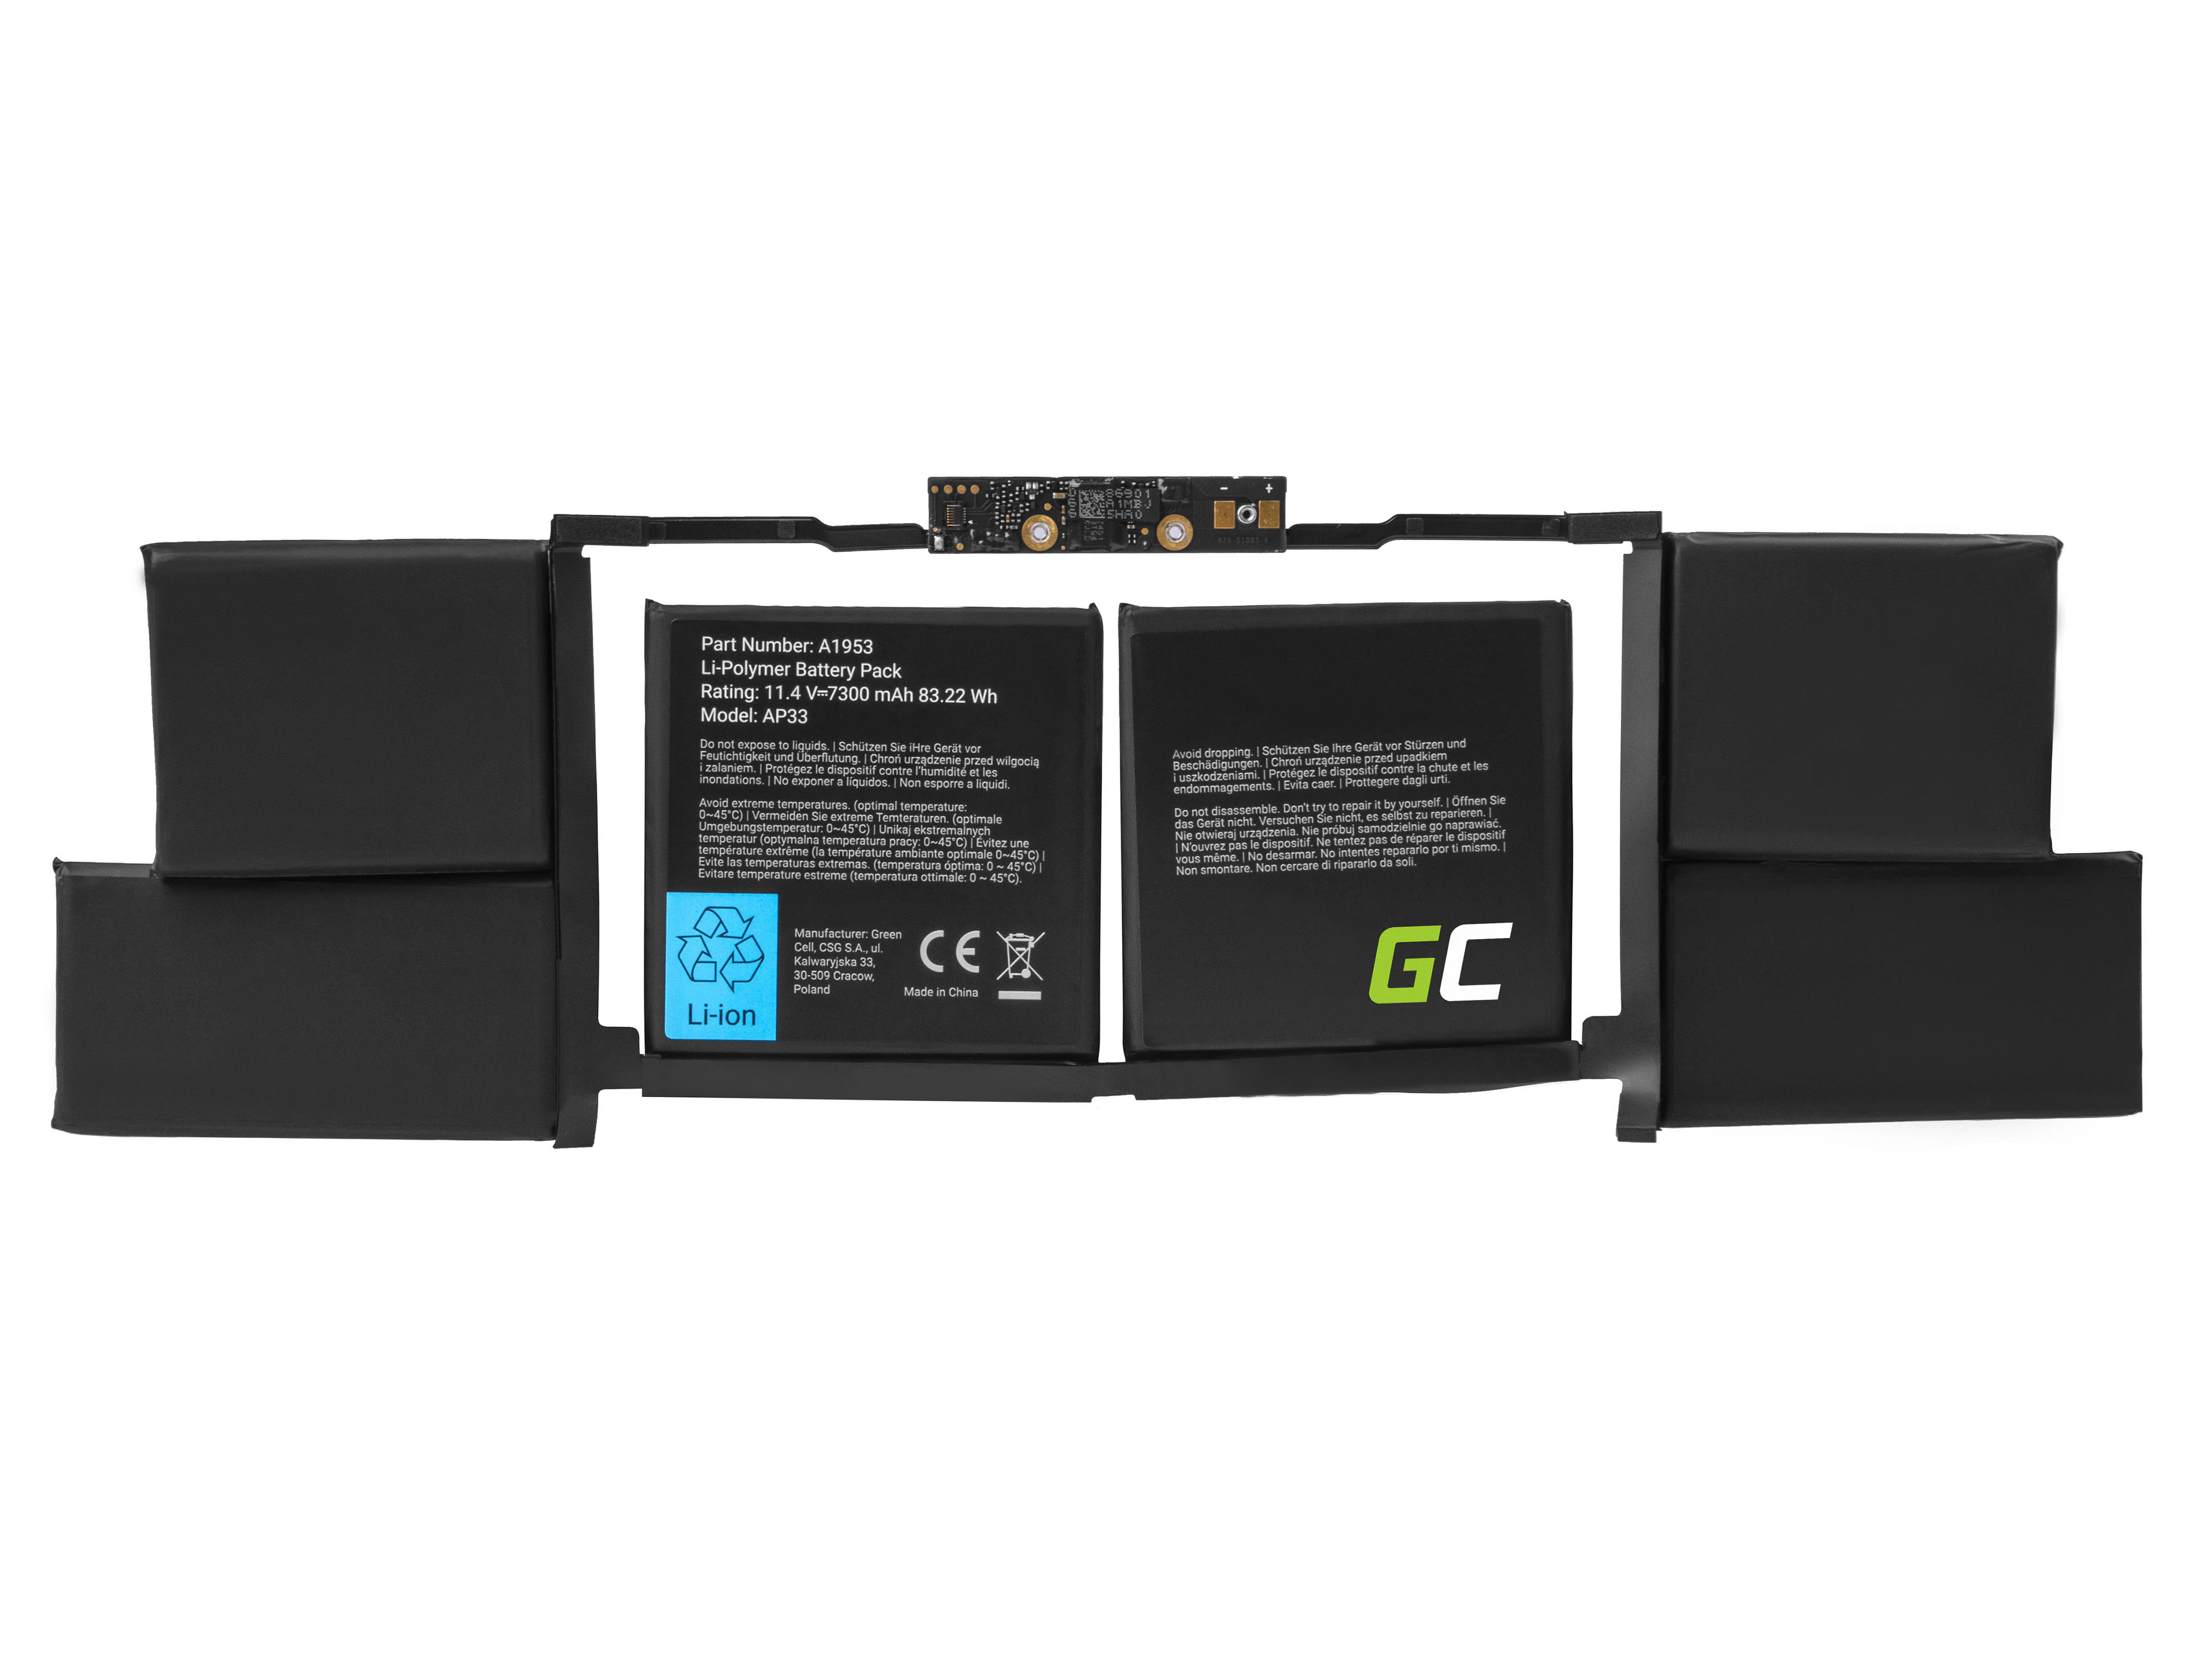 A1953 battery for Apple Macbook Pro 15 A1990 (2018 and 2019) laptops